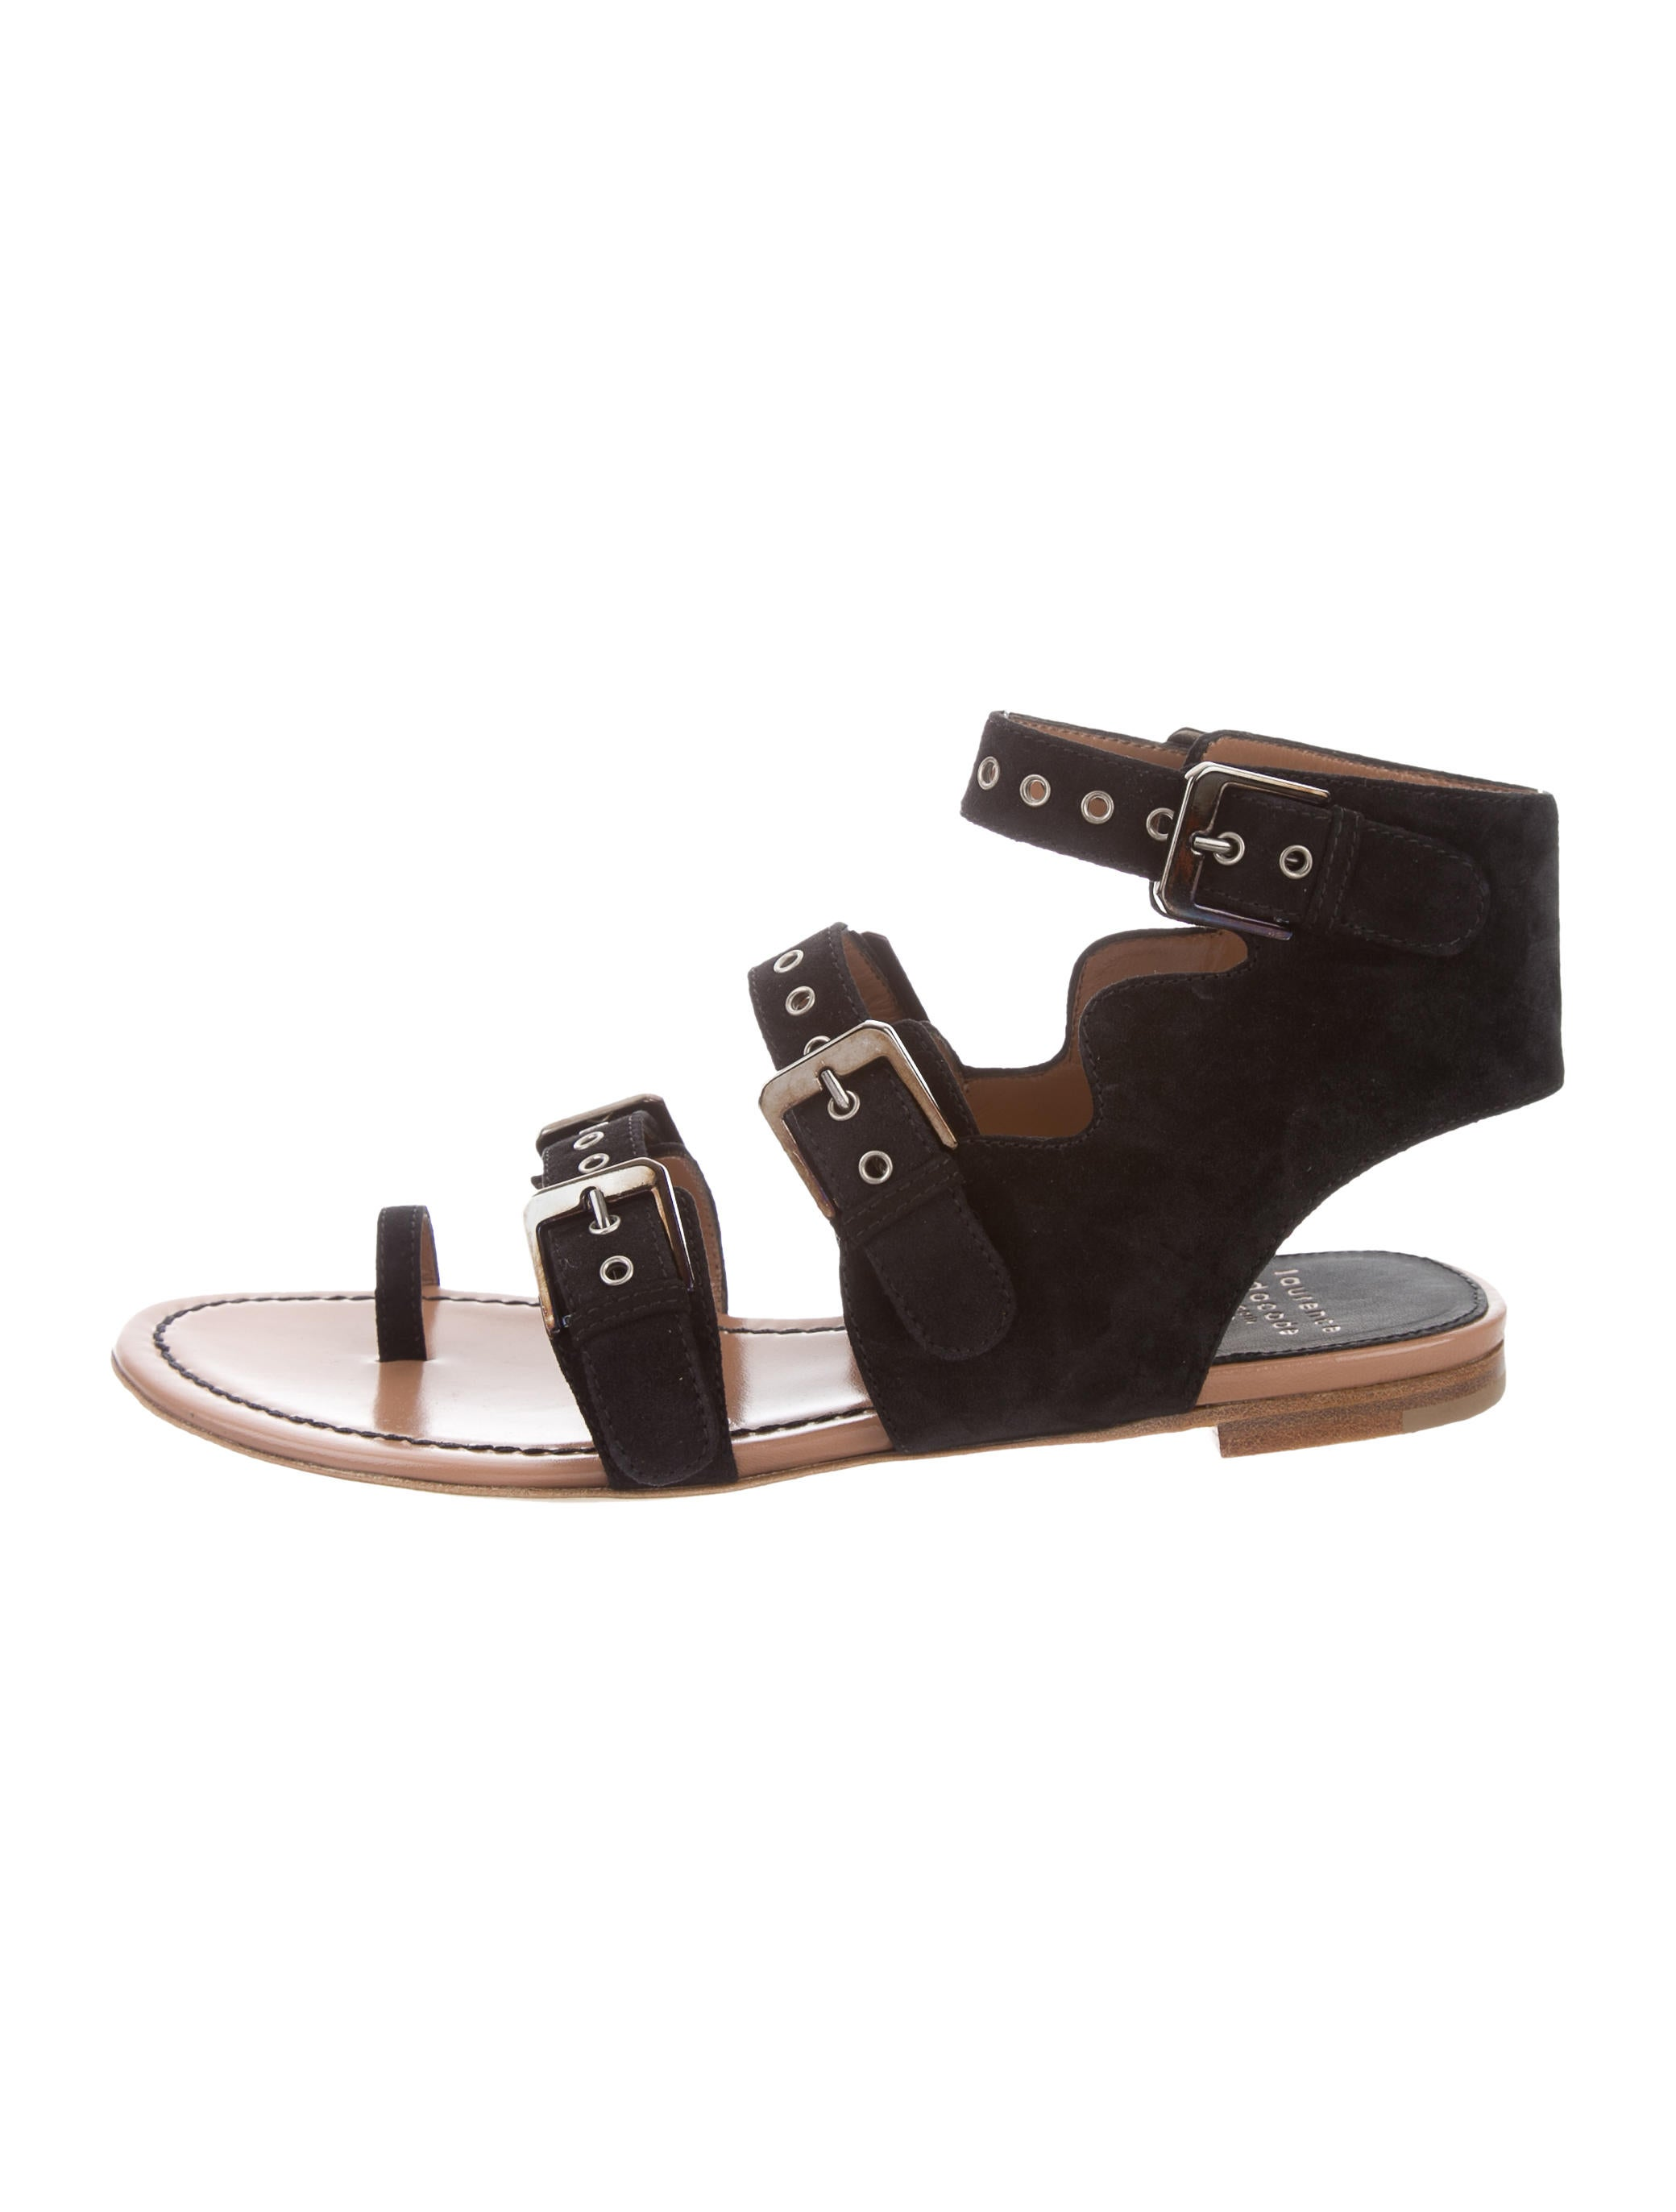 Laurence Dacade Nindy Suede Sandals sale store clearance outlet locations free shipping fashion Style best prices cheap price R44y1O